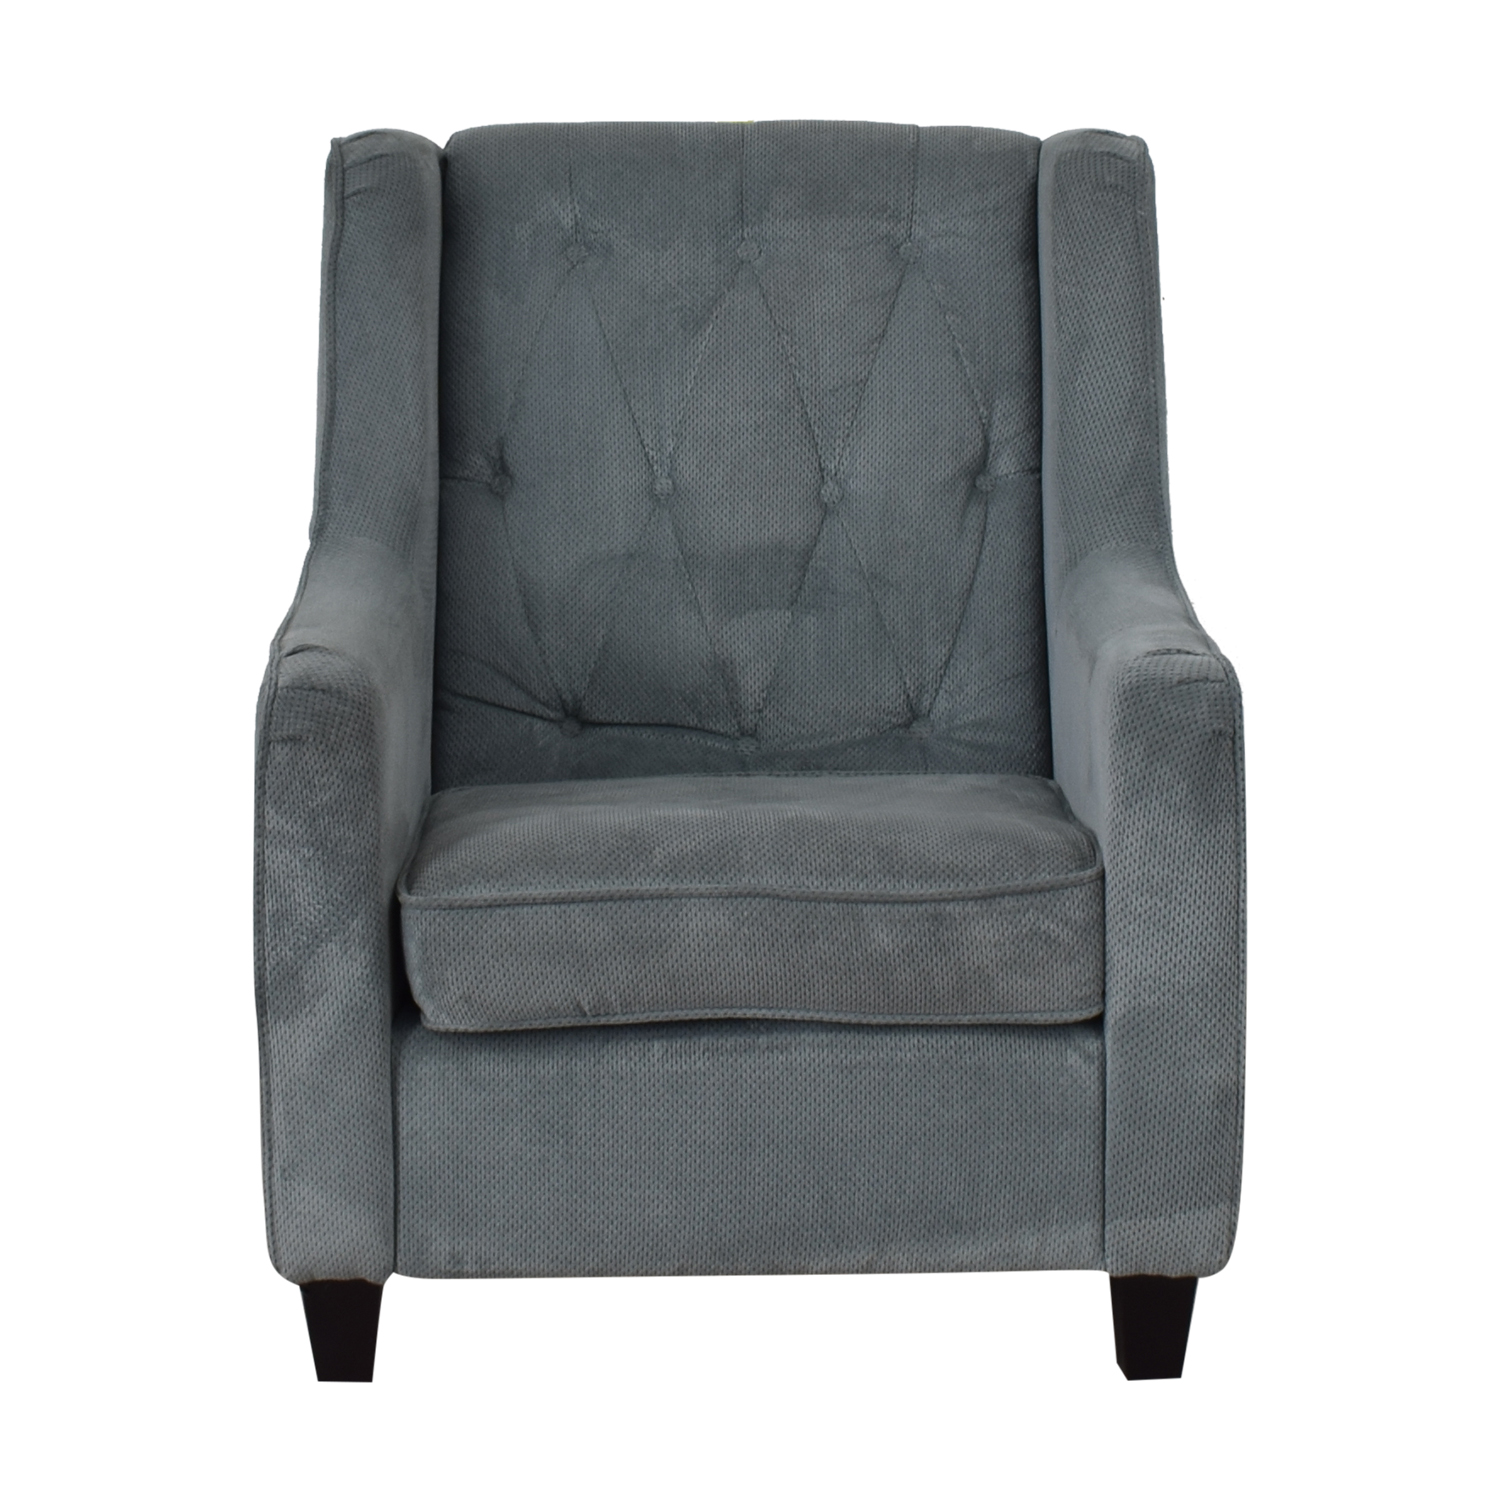 Home Goods Accent Chairs: HomeGoods Homegoods Blue Accent Chair / Chairs